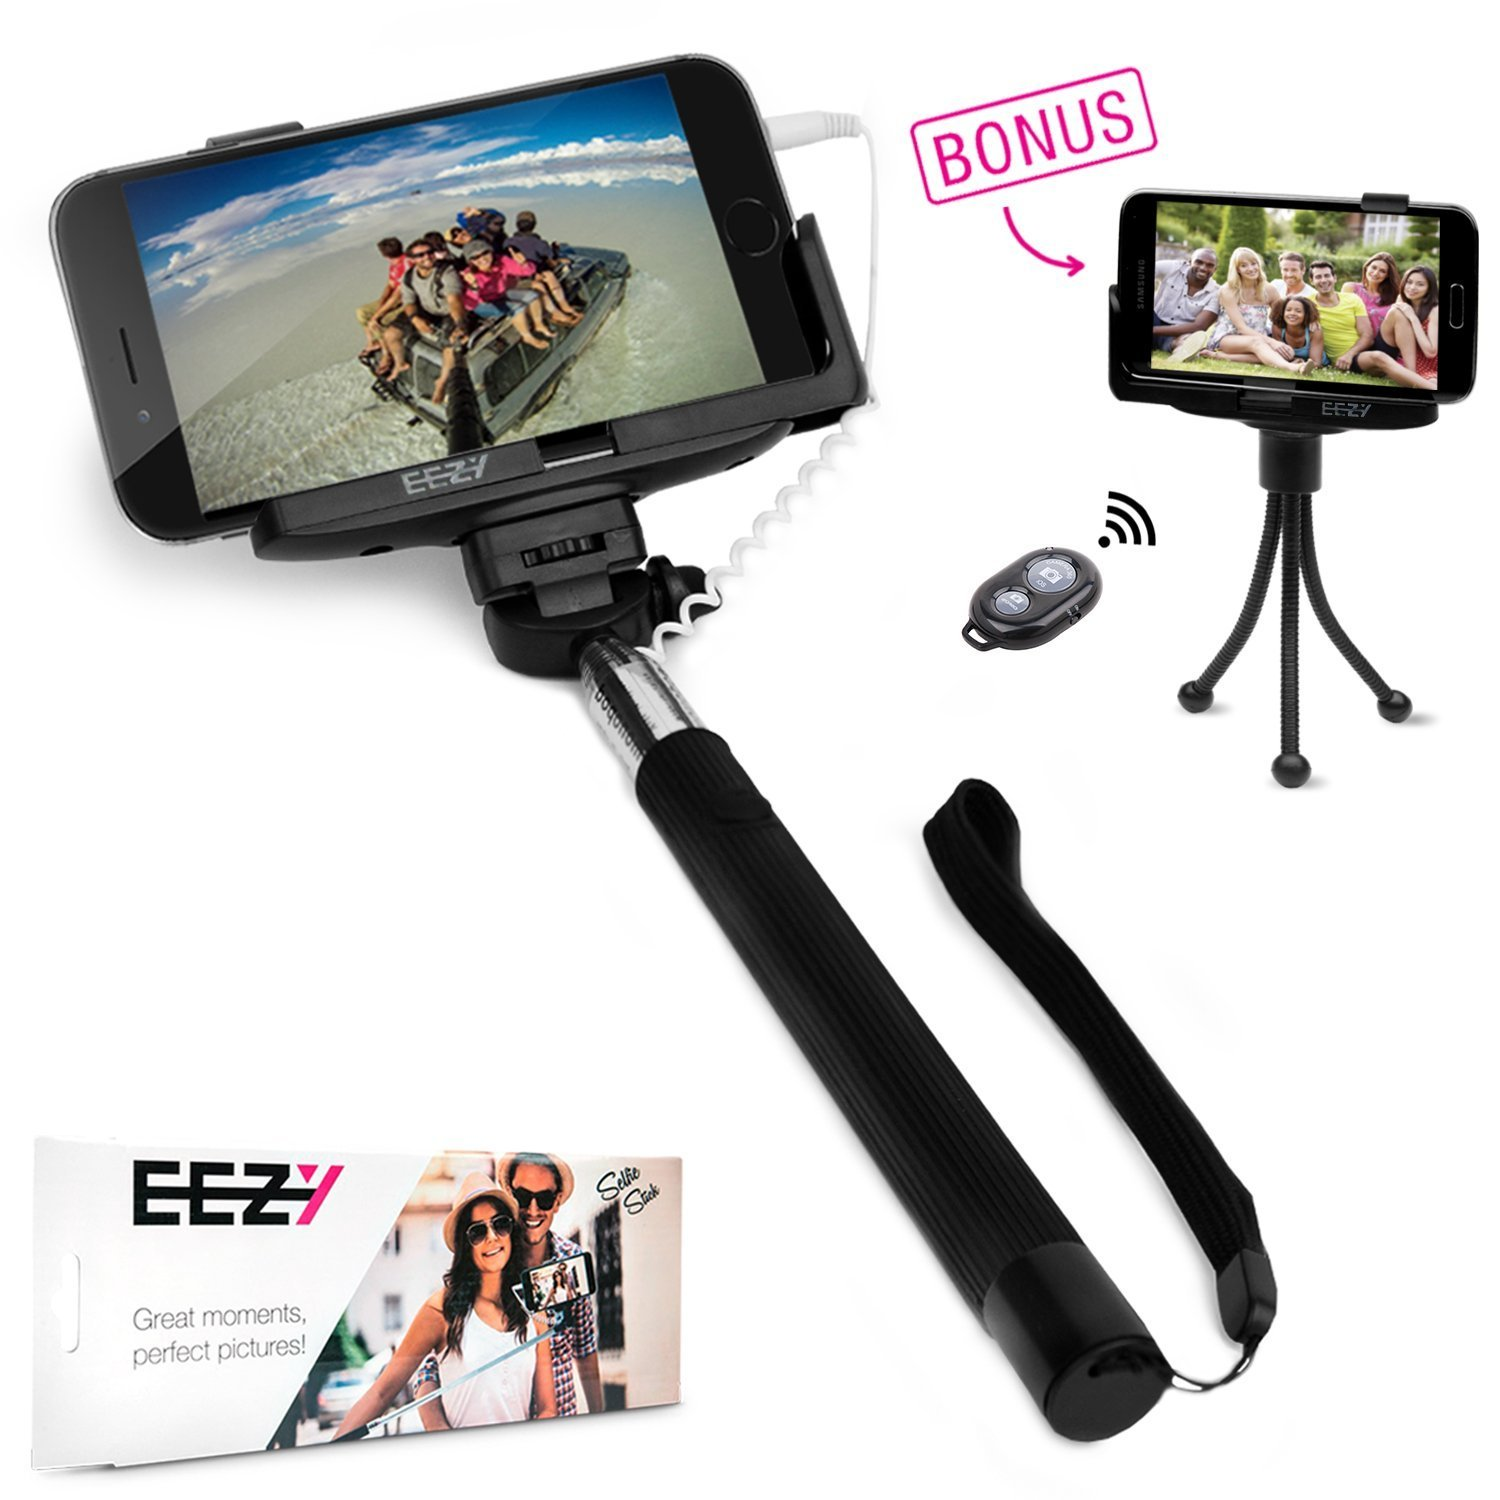 cell phone selfie stick tripod adapters selfie stick eez y quickshot pro 3 in 1 battery free. Black Bedroom Furniture Sets. Home Design Ideas